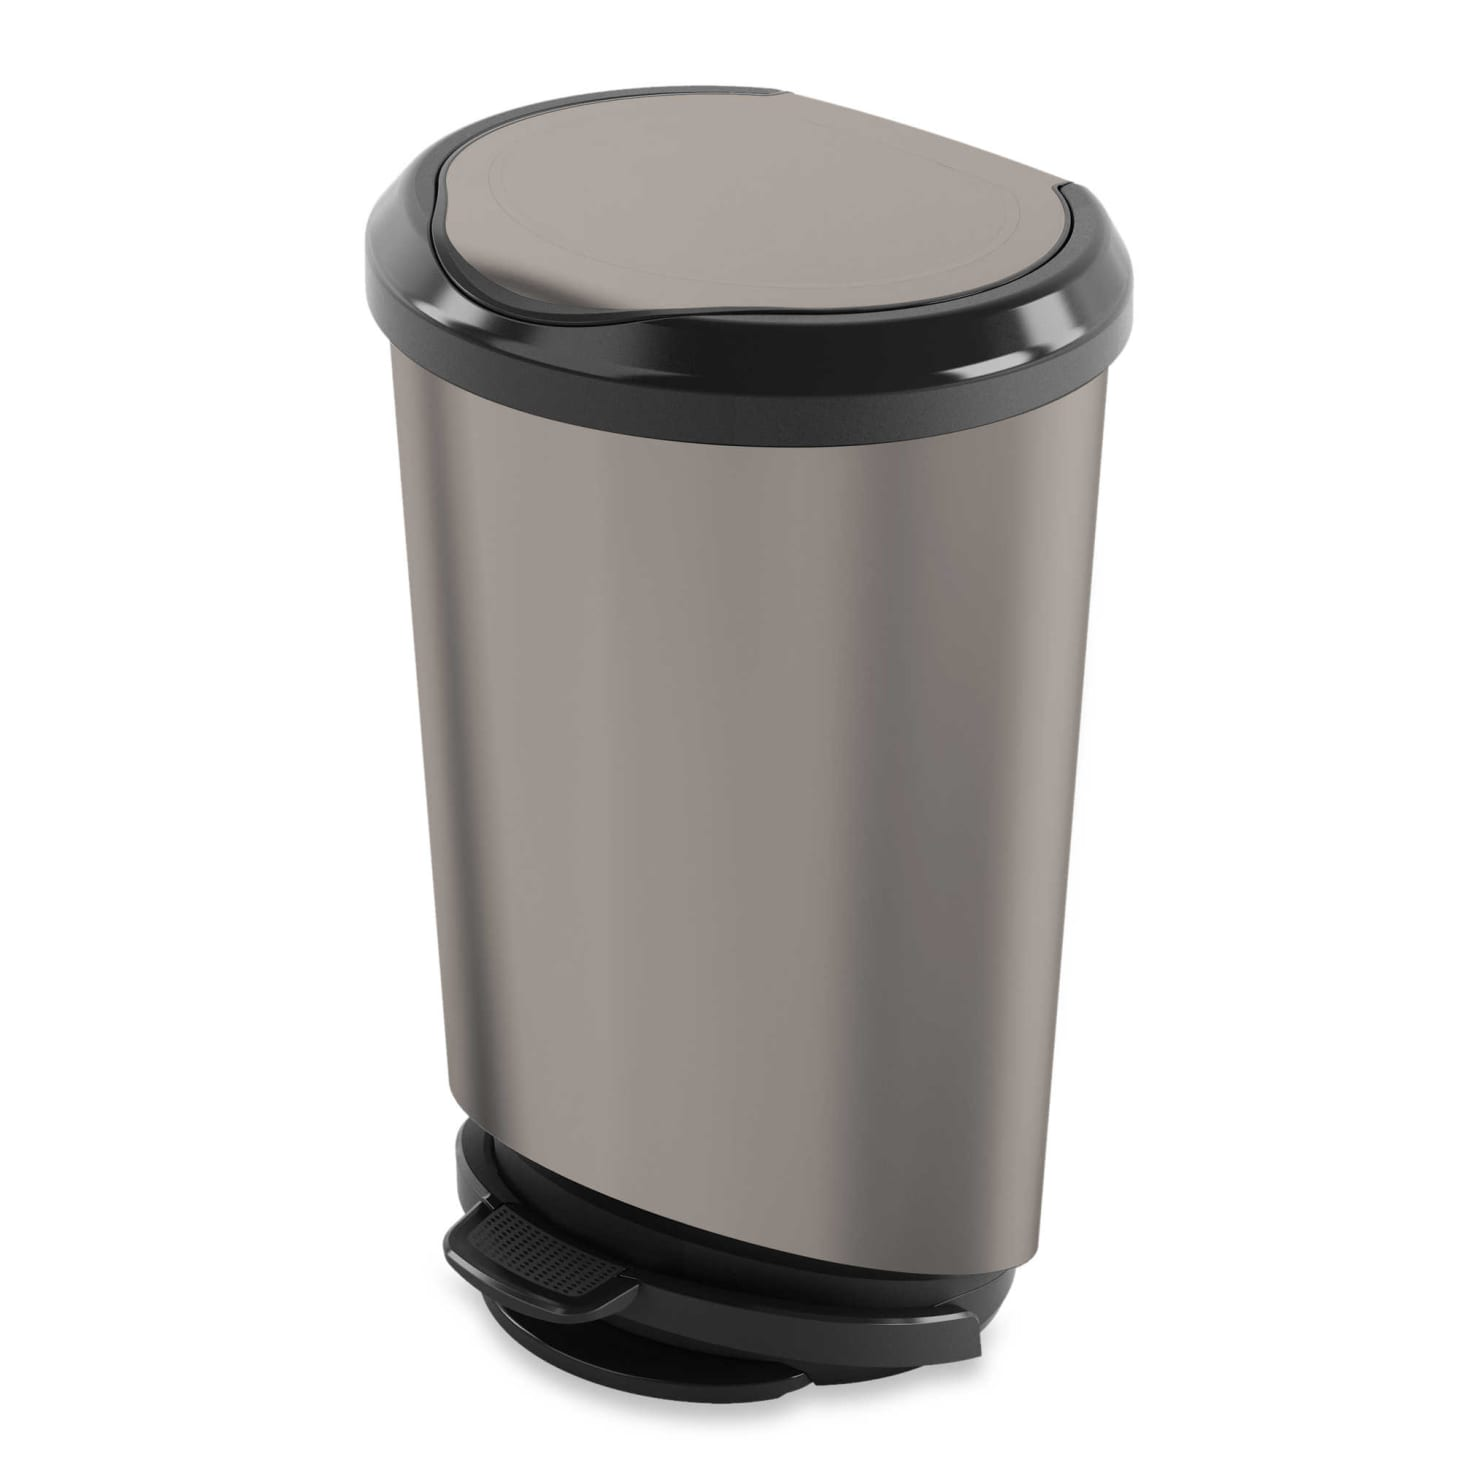 The Best Kitchen Trash Cans At Every Price Point